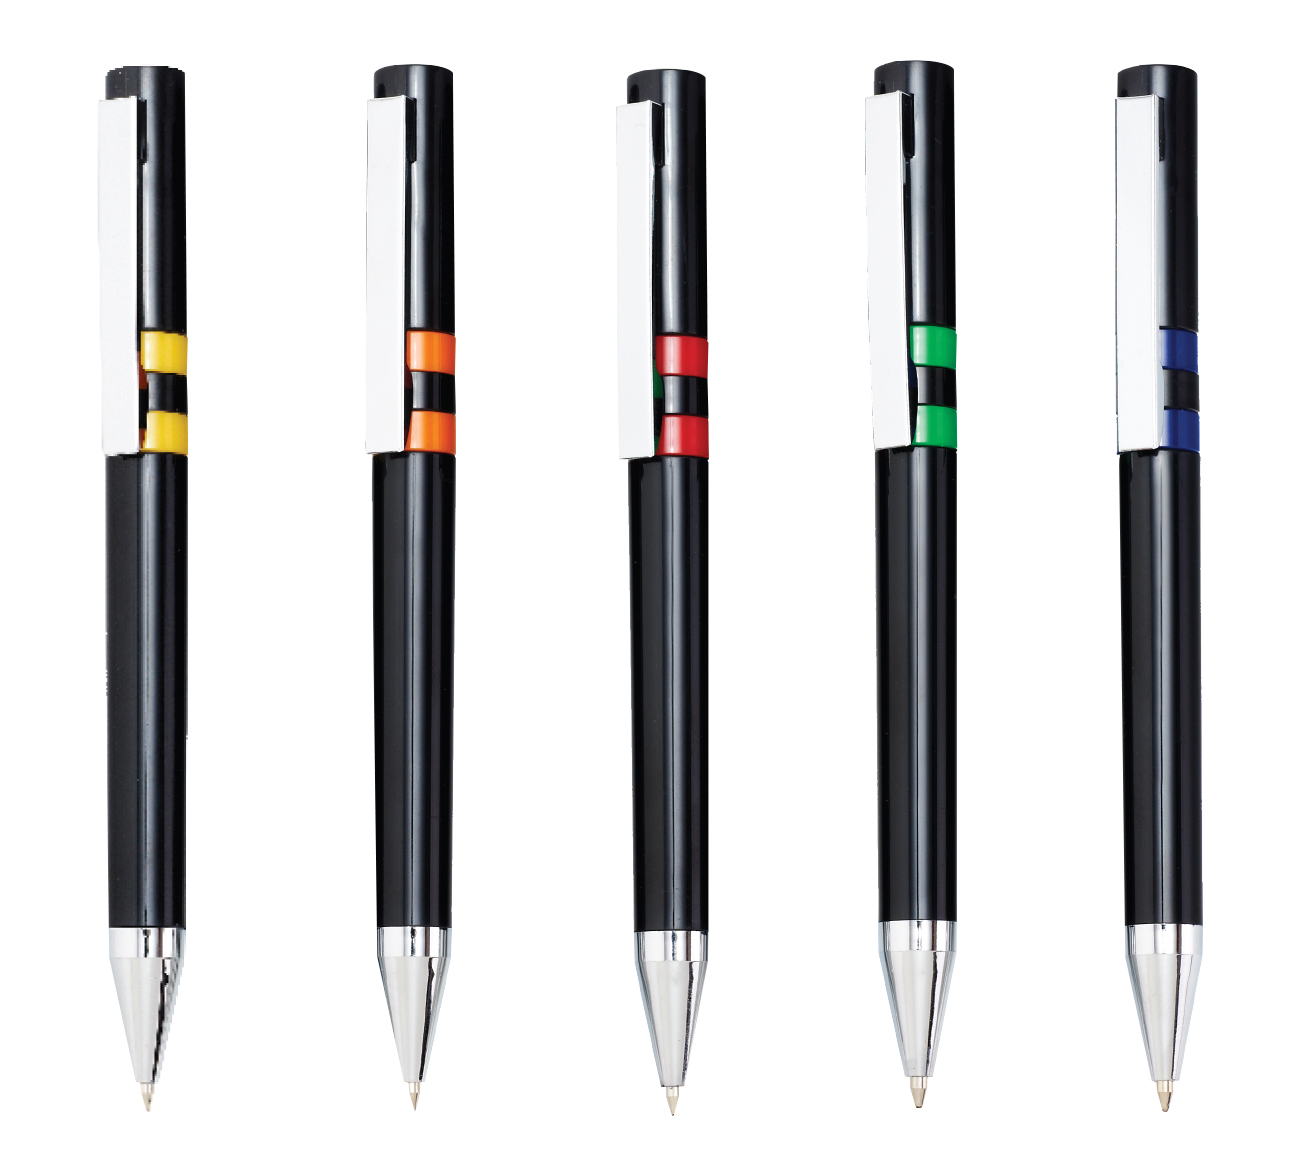 Deco Black Pen - Avail in: Orange, Red, Green, Yellow, or Blue